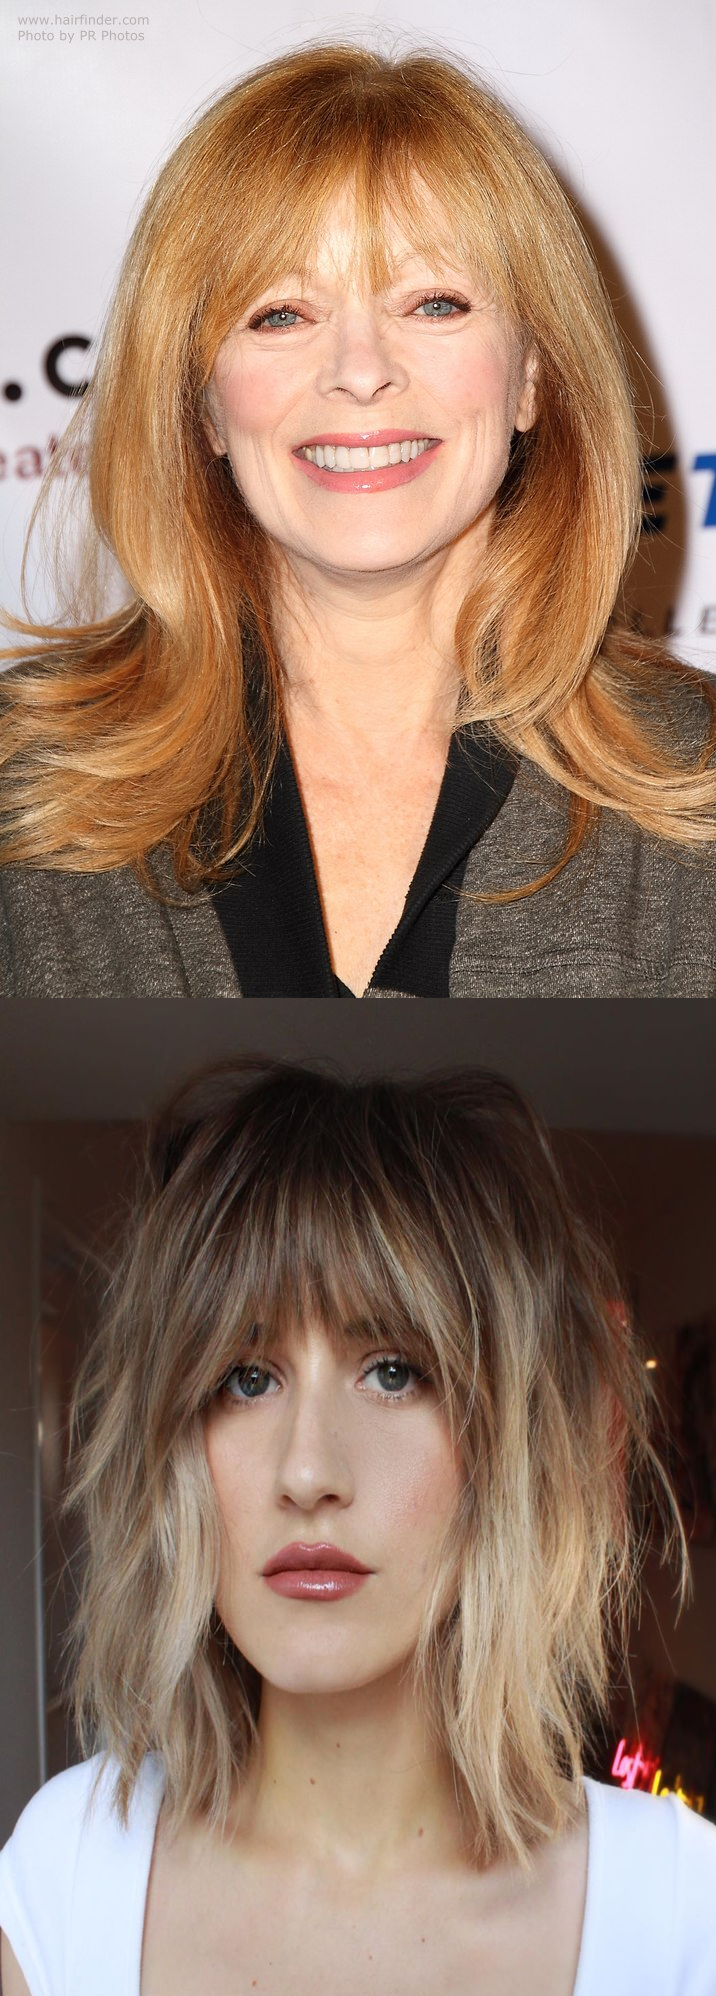 50 Most Trendy And Flattering Bangs For Round Faces In 2021 26 Haircuts For Round Faces Long 2 In 2021 Bangs For Round Face Round Face Haircuts Round Face